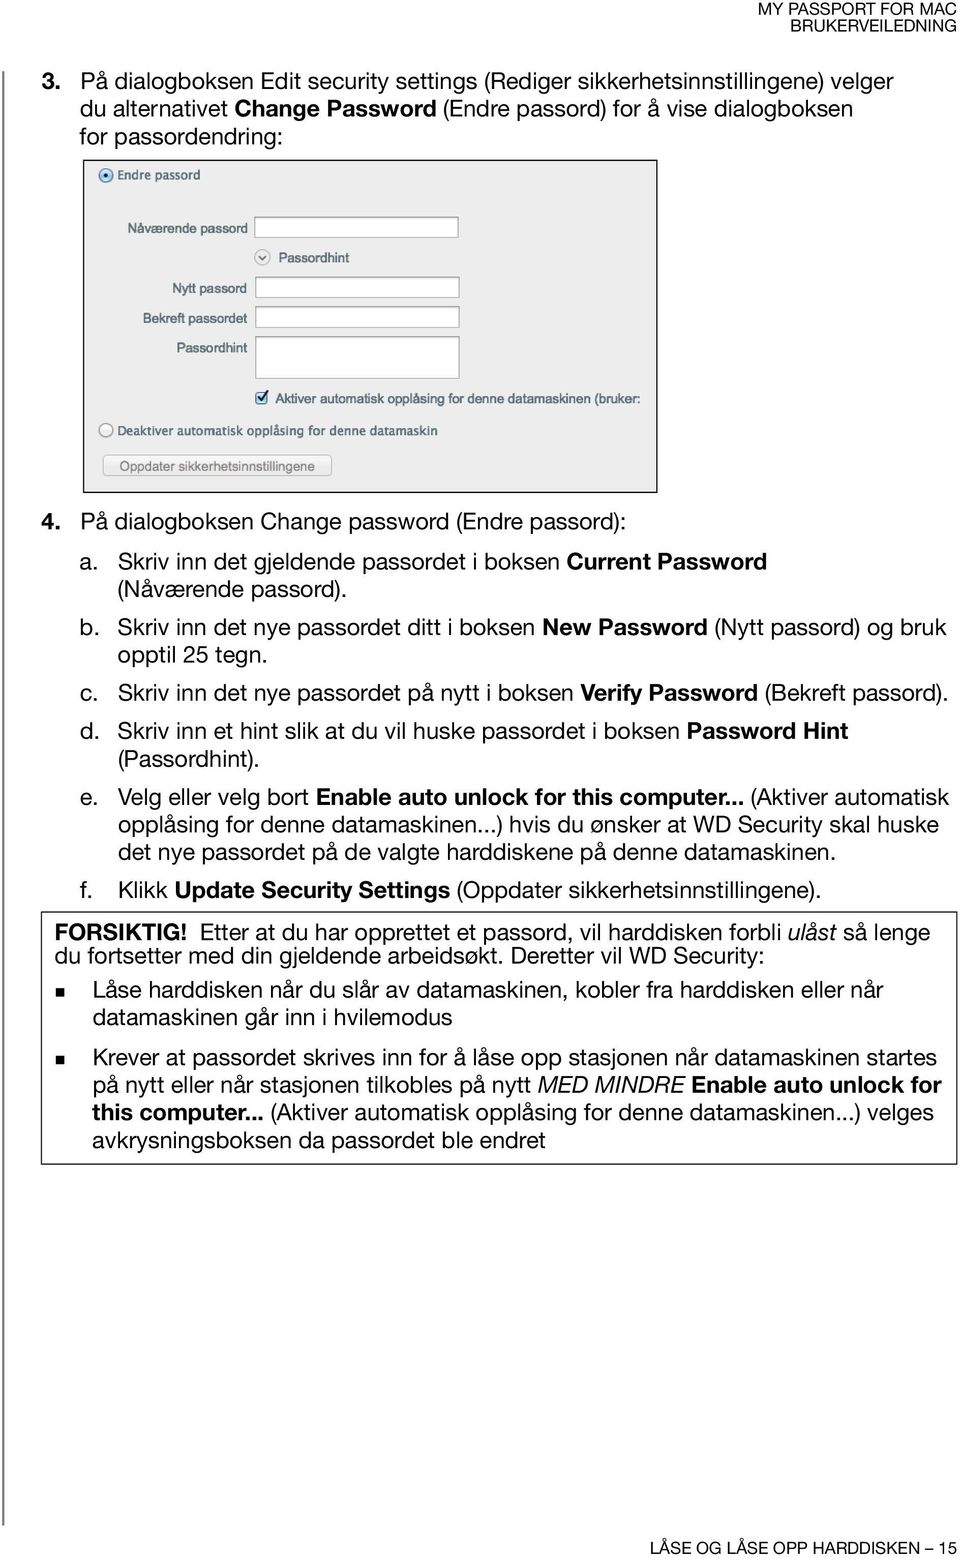 c. Skriv inn det nye passordet på nytt i boksen Verify Password (Bekreft passord). d. Skriv inn et hint slik at du vil huske passordet i boksen Password Hint (Passordhint). e. Velg eller velg bort Enable auto unlock for this computer.